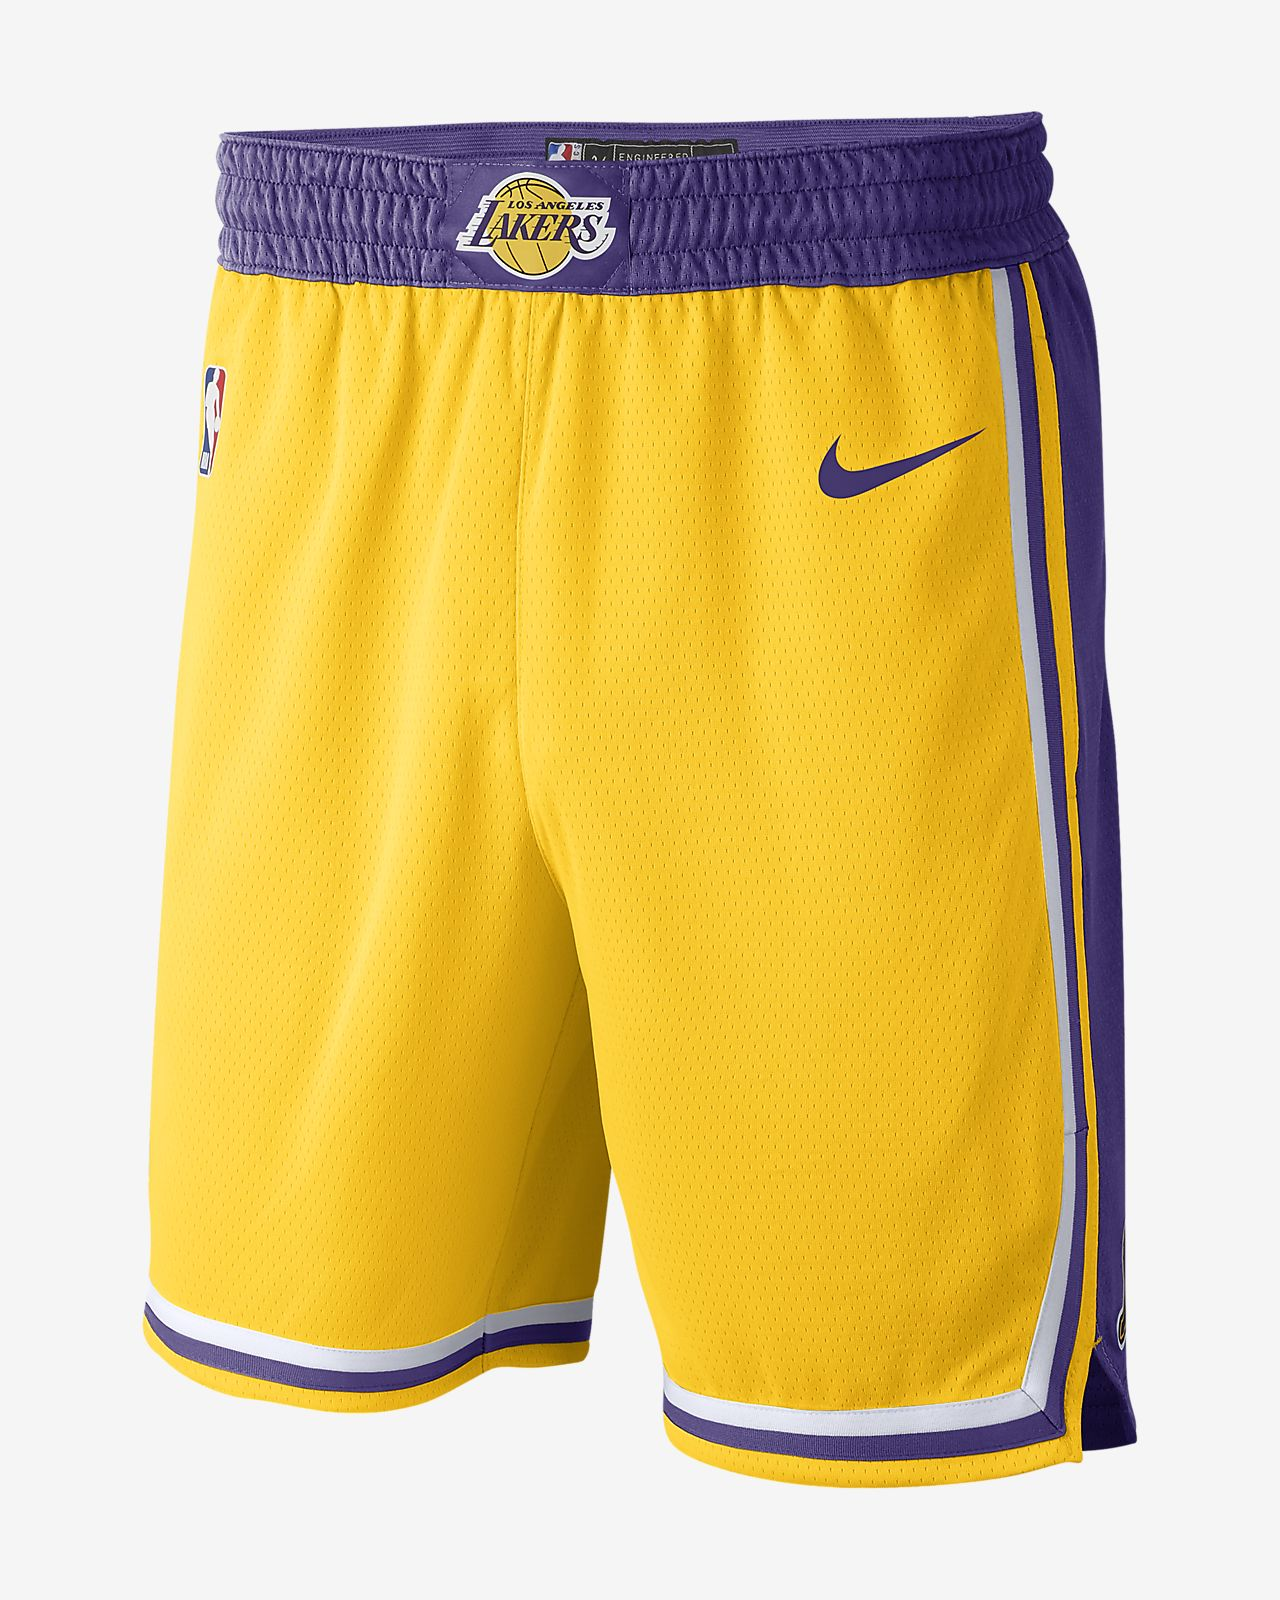 Shorts de la NBA para hombre Nike Los Angeles Lakers Icon Edition Swingman